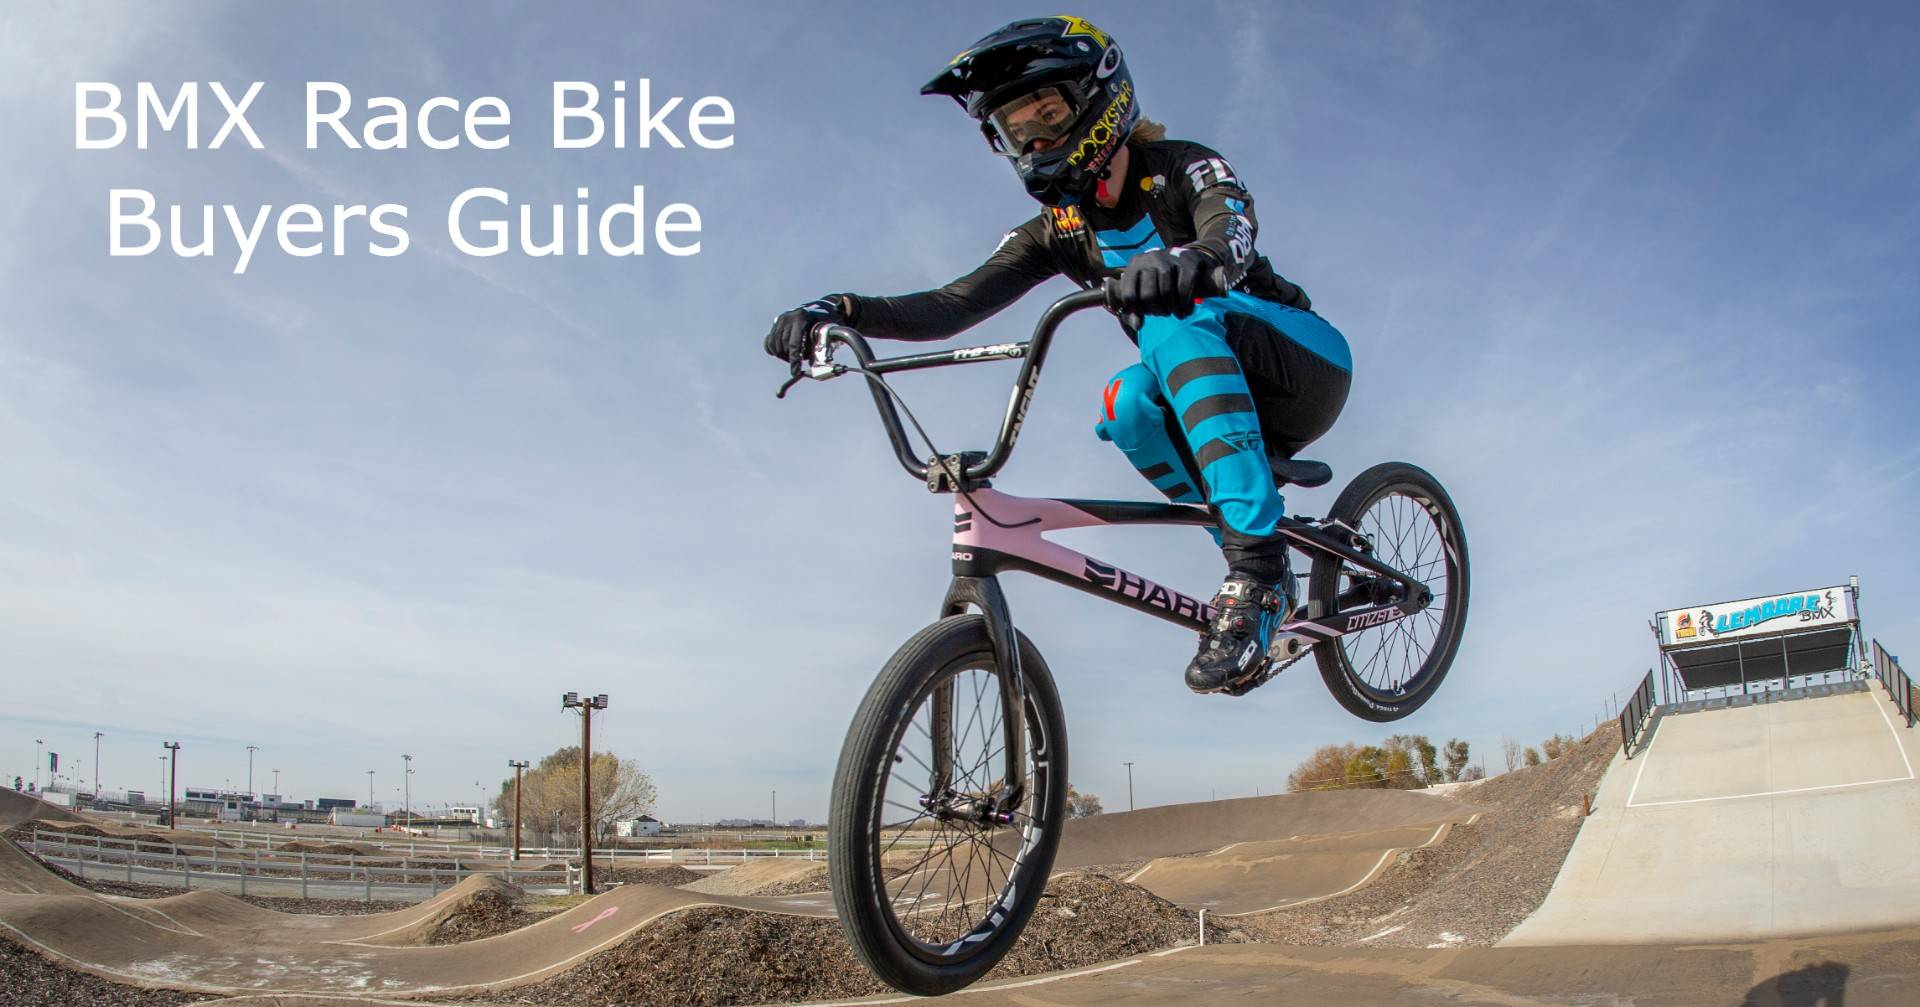 Haro BMX racer Brooke Crain jumping on the BMX Race Bike Size Guide